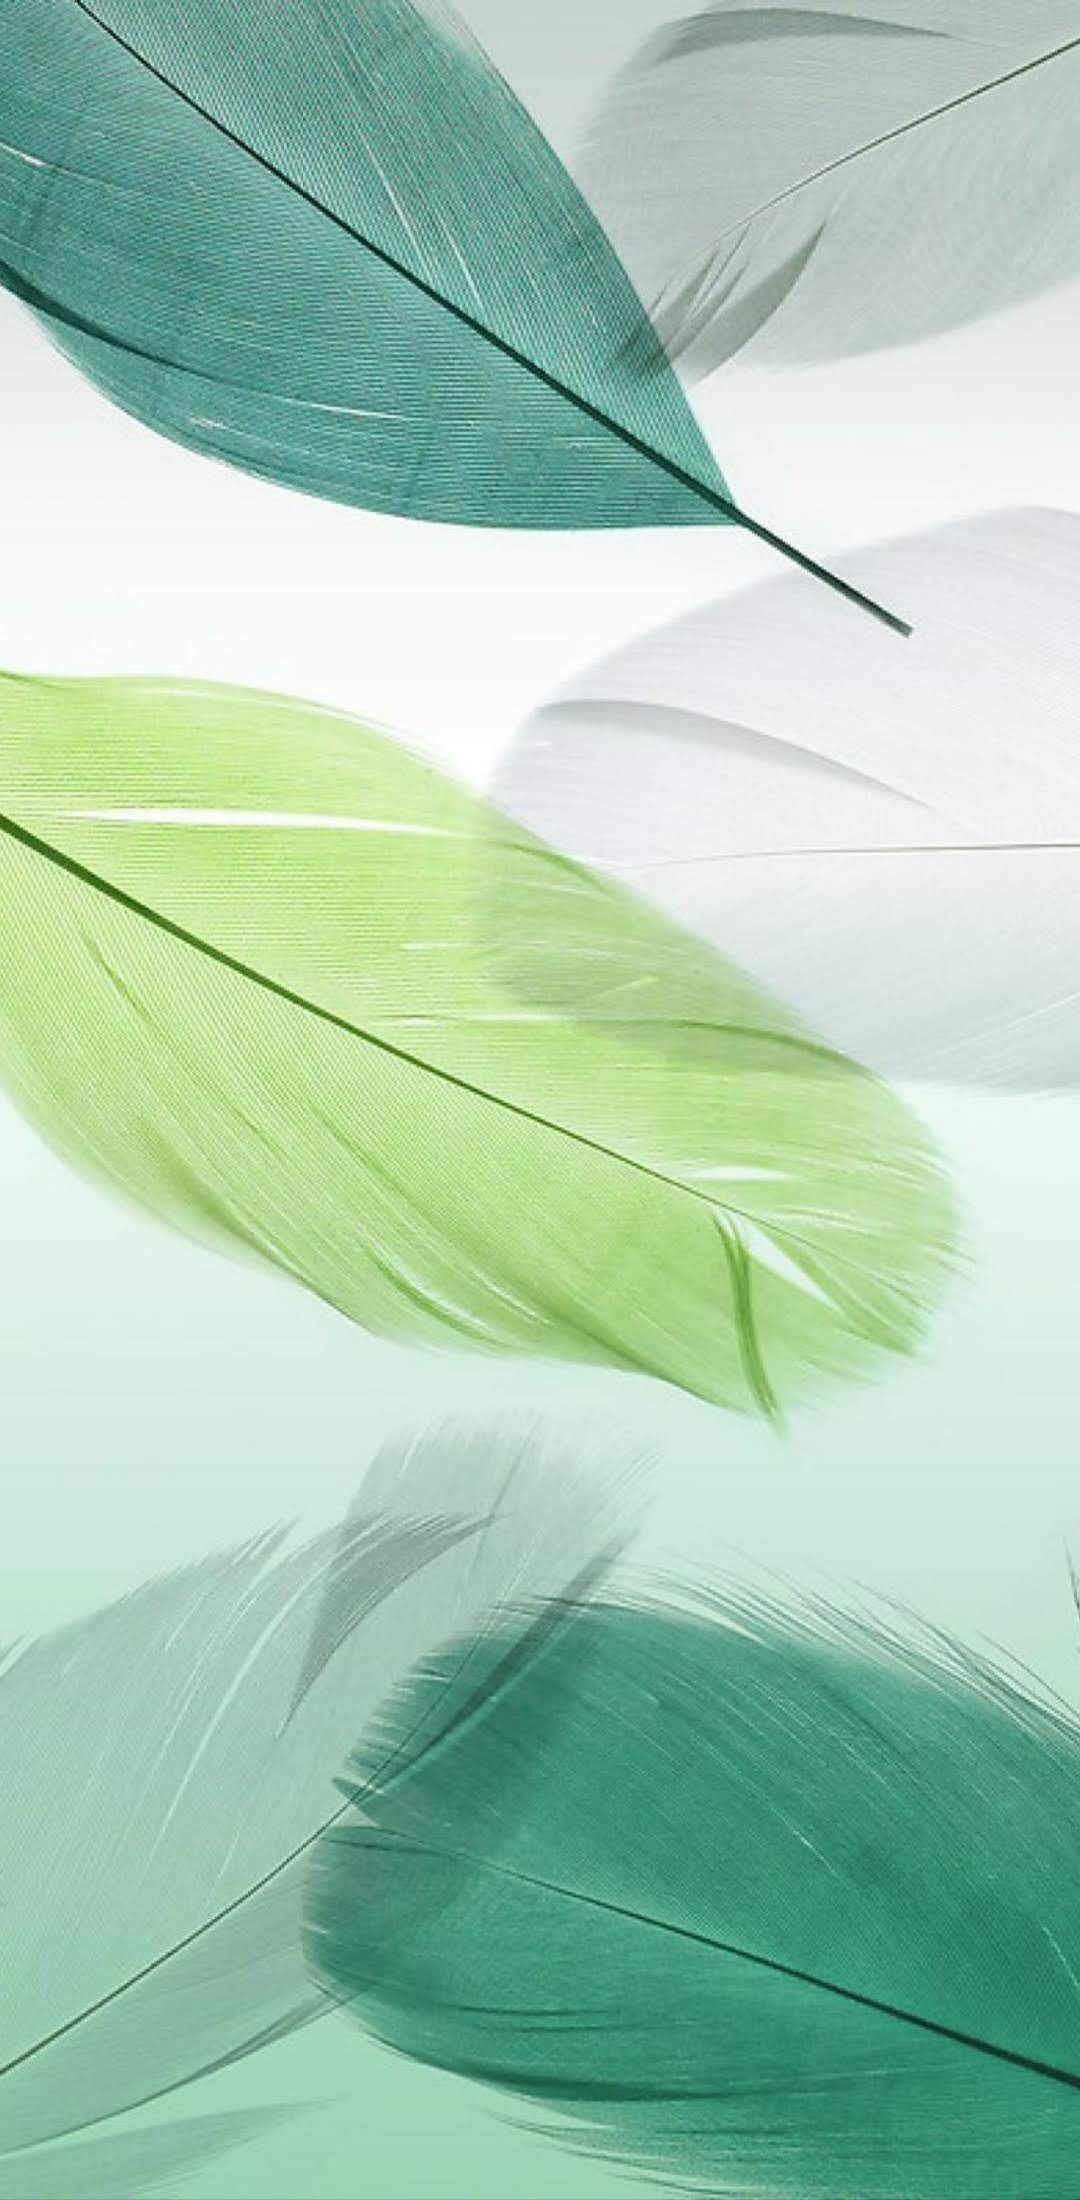 background abstract leaf nature flora bright graphic illustration color texture art design